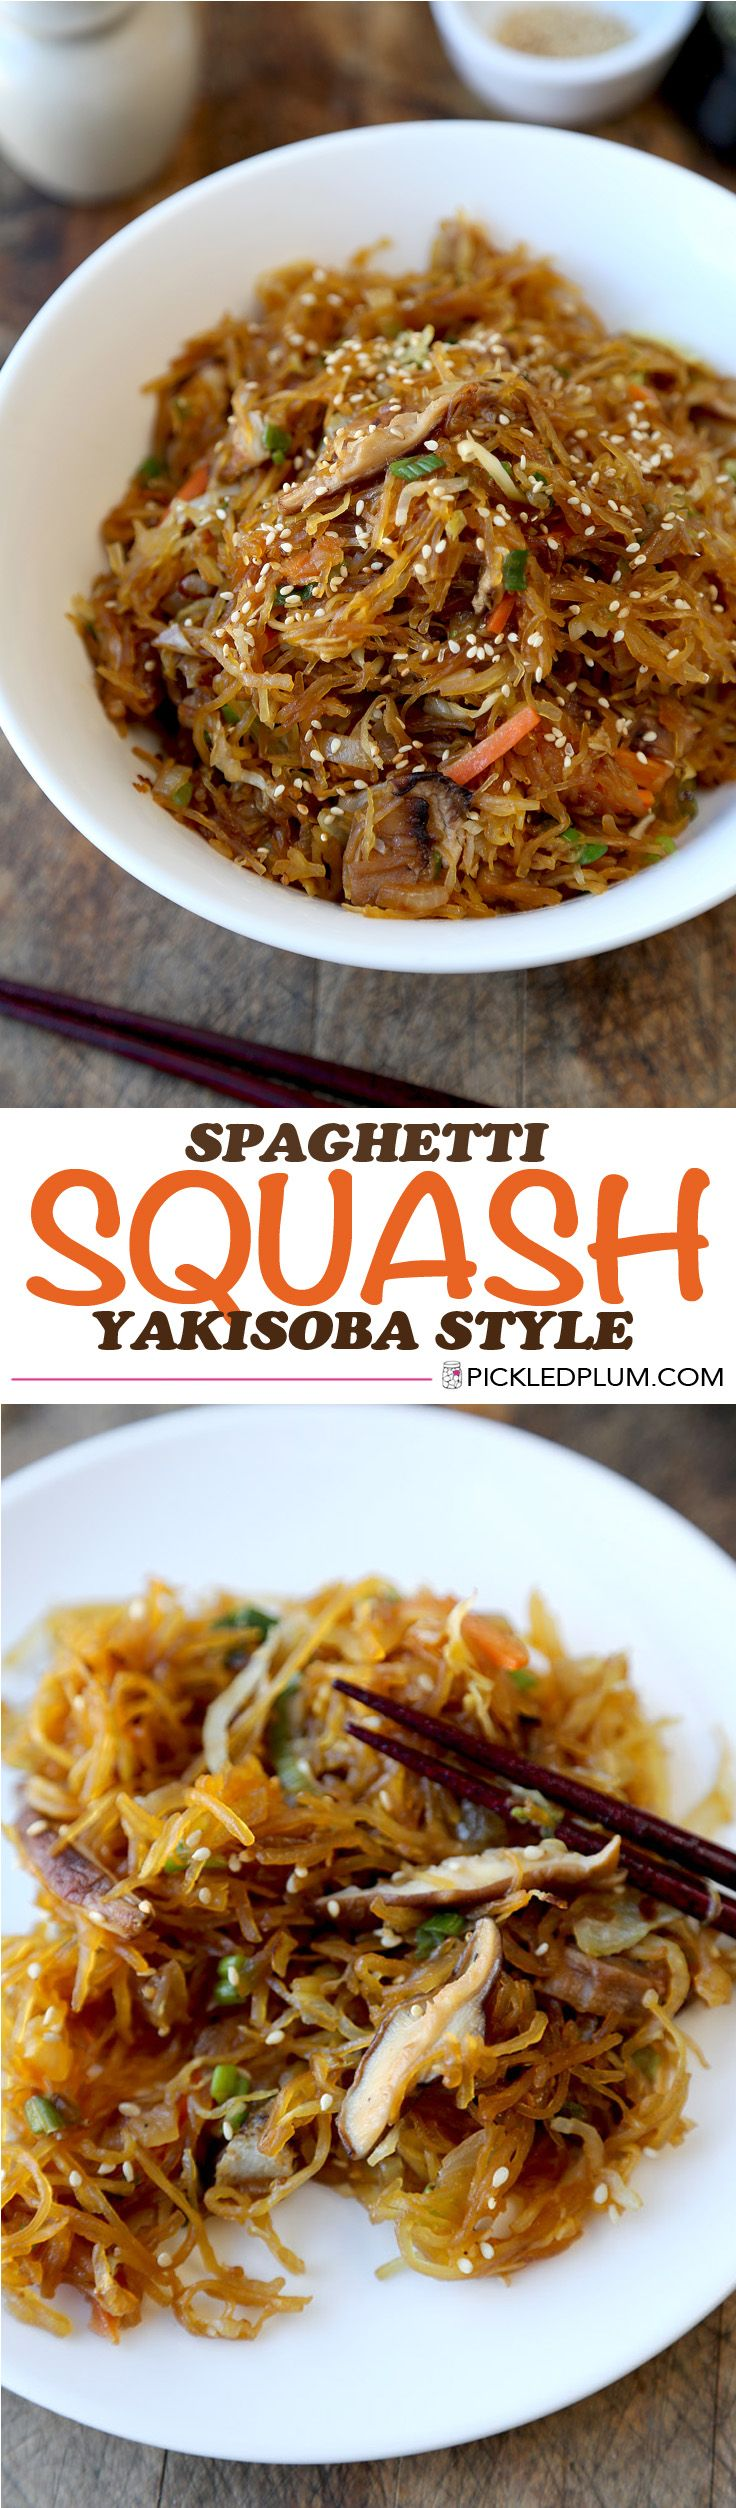 Healthy Recipe: Spaghetti Squash Yakisoba Style - Only 20 minutes to make (after squash is cooked) and makes a wonderful substitute to carbs! Vegetarian. http://www.pickledplum.com/yakisoba-spaghetti-squash-recipe/